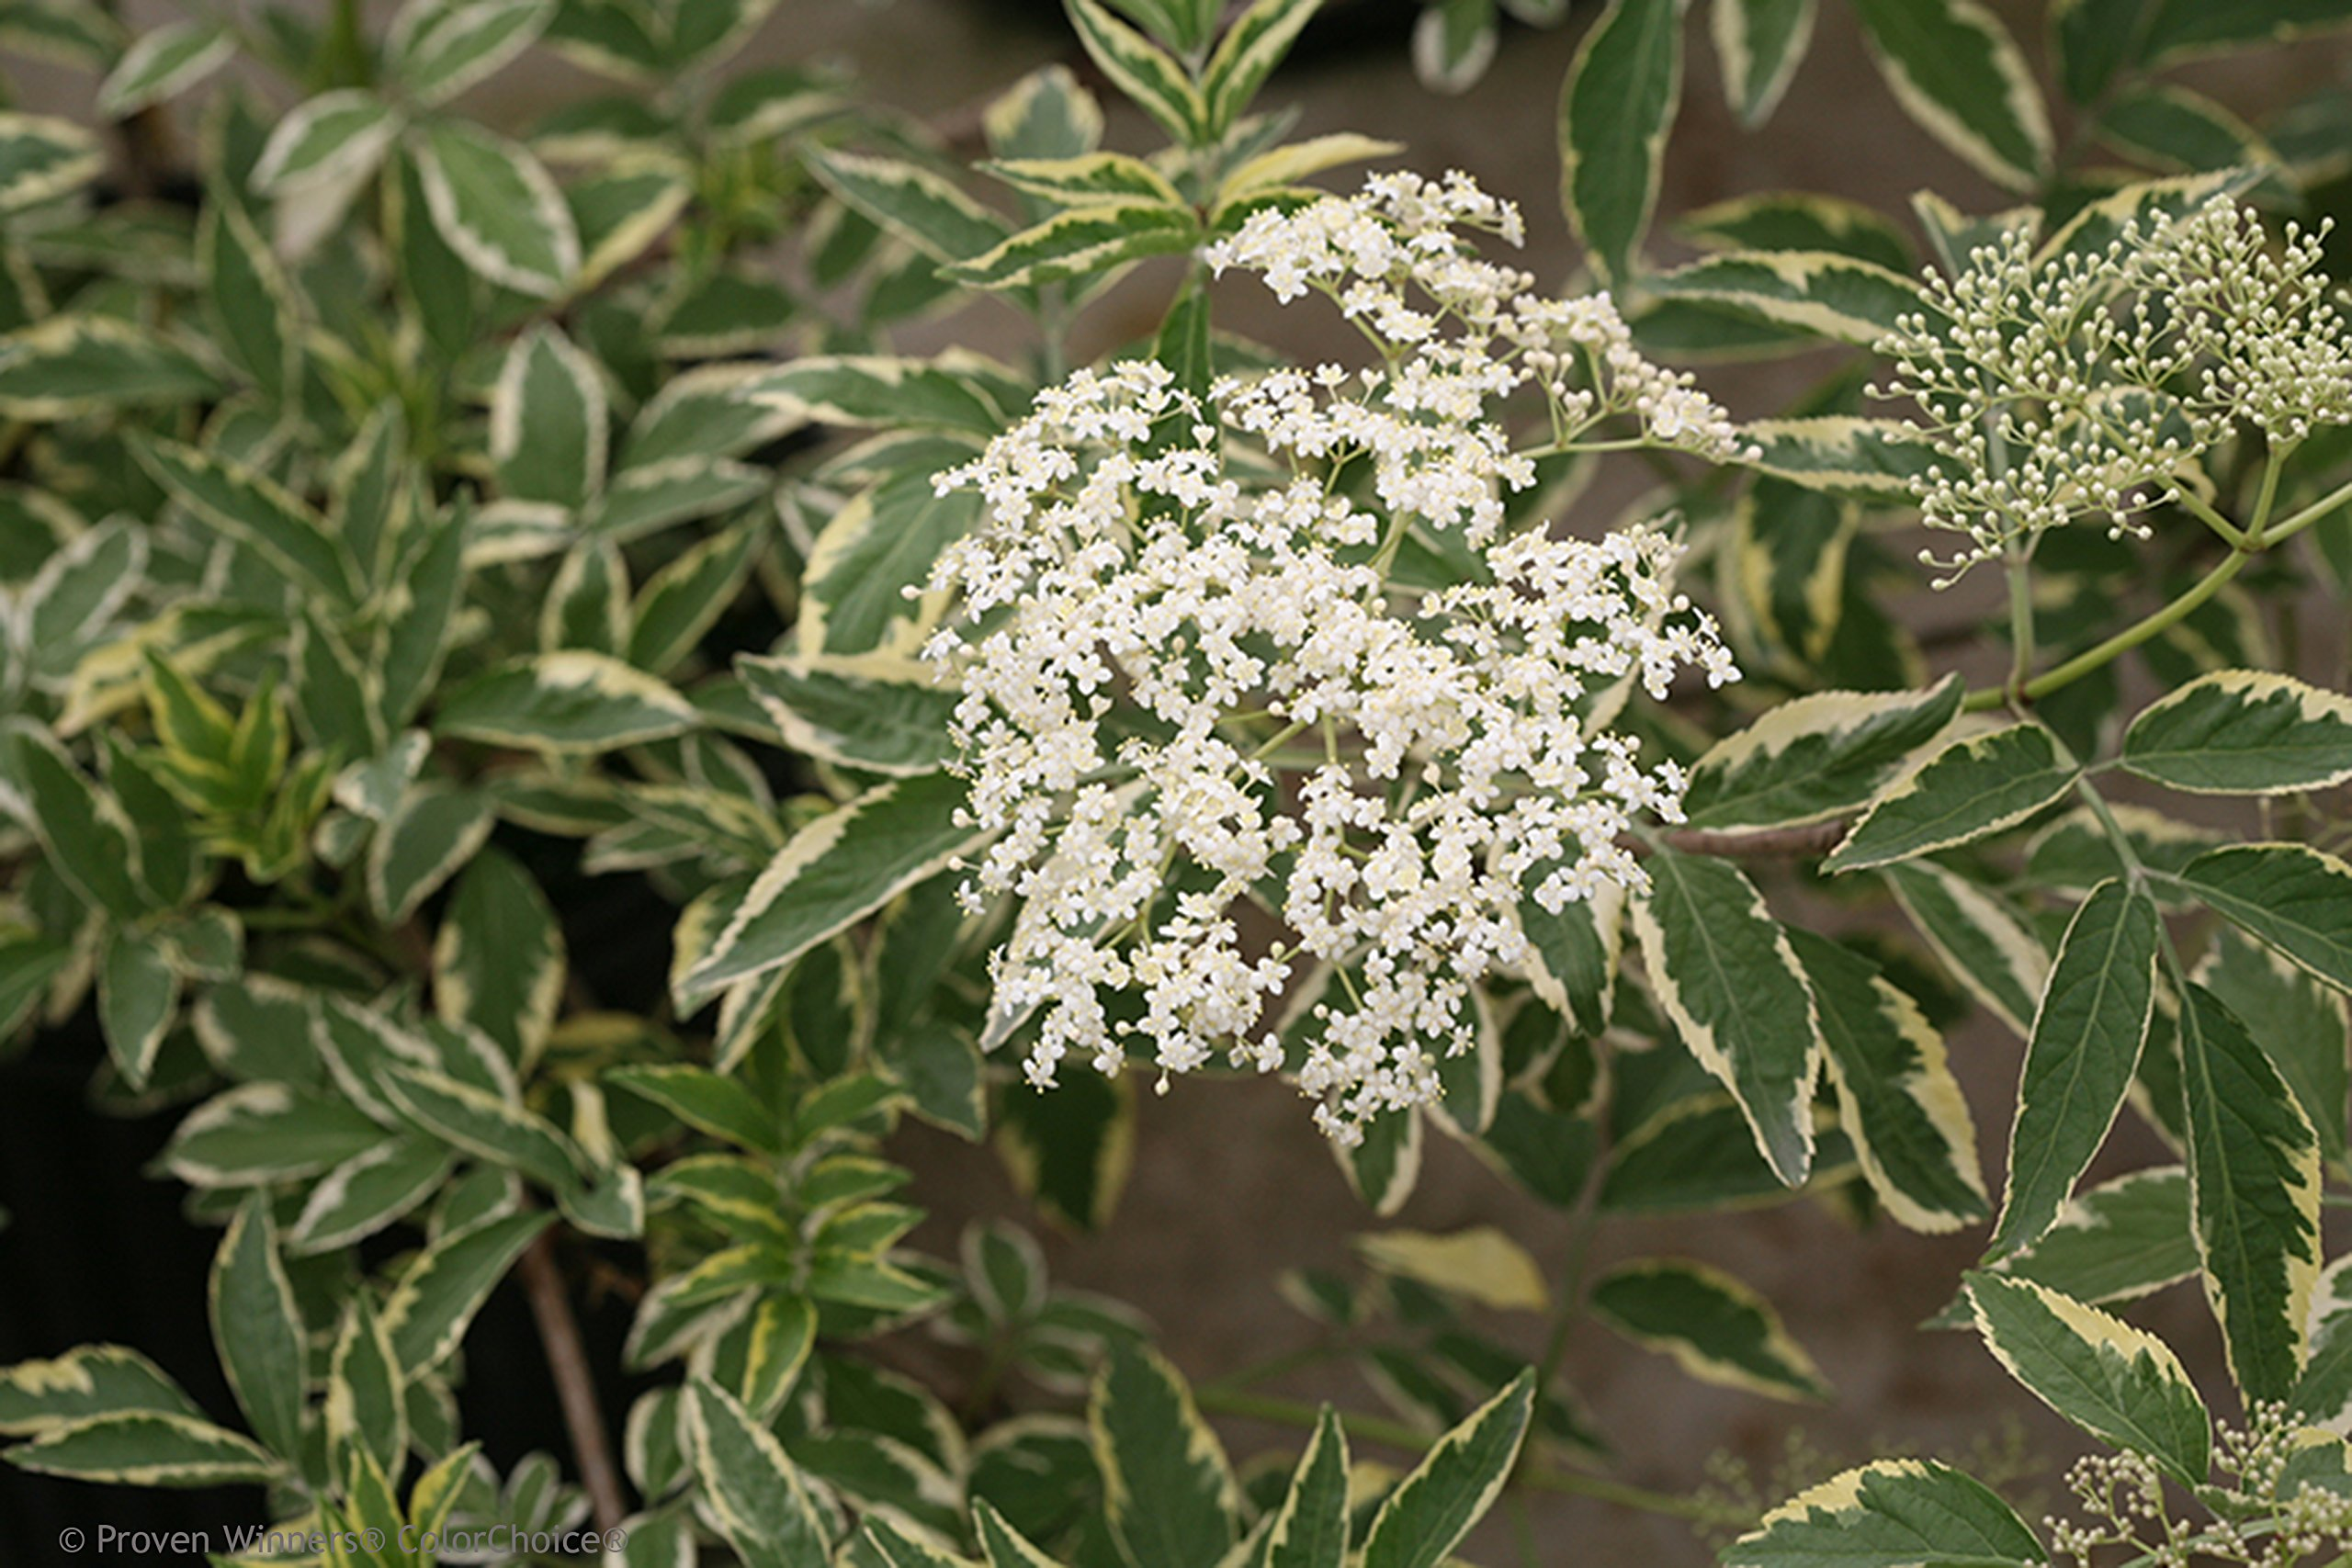 Instant Karma Elderberry (Sambucus) Live Shrub, White Flowers and Variegated Foliage, 1 Gallon by Proven Winners (Image #2)